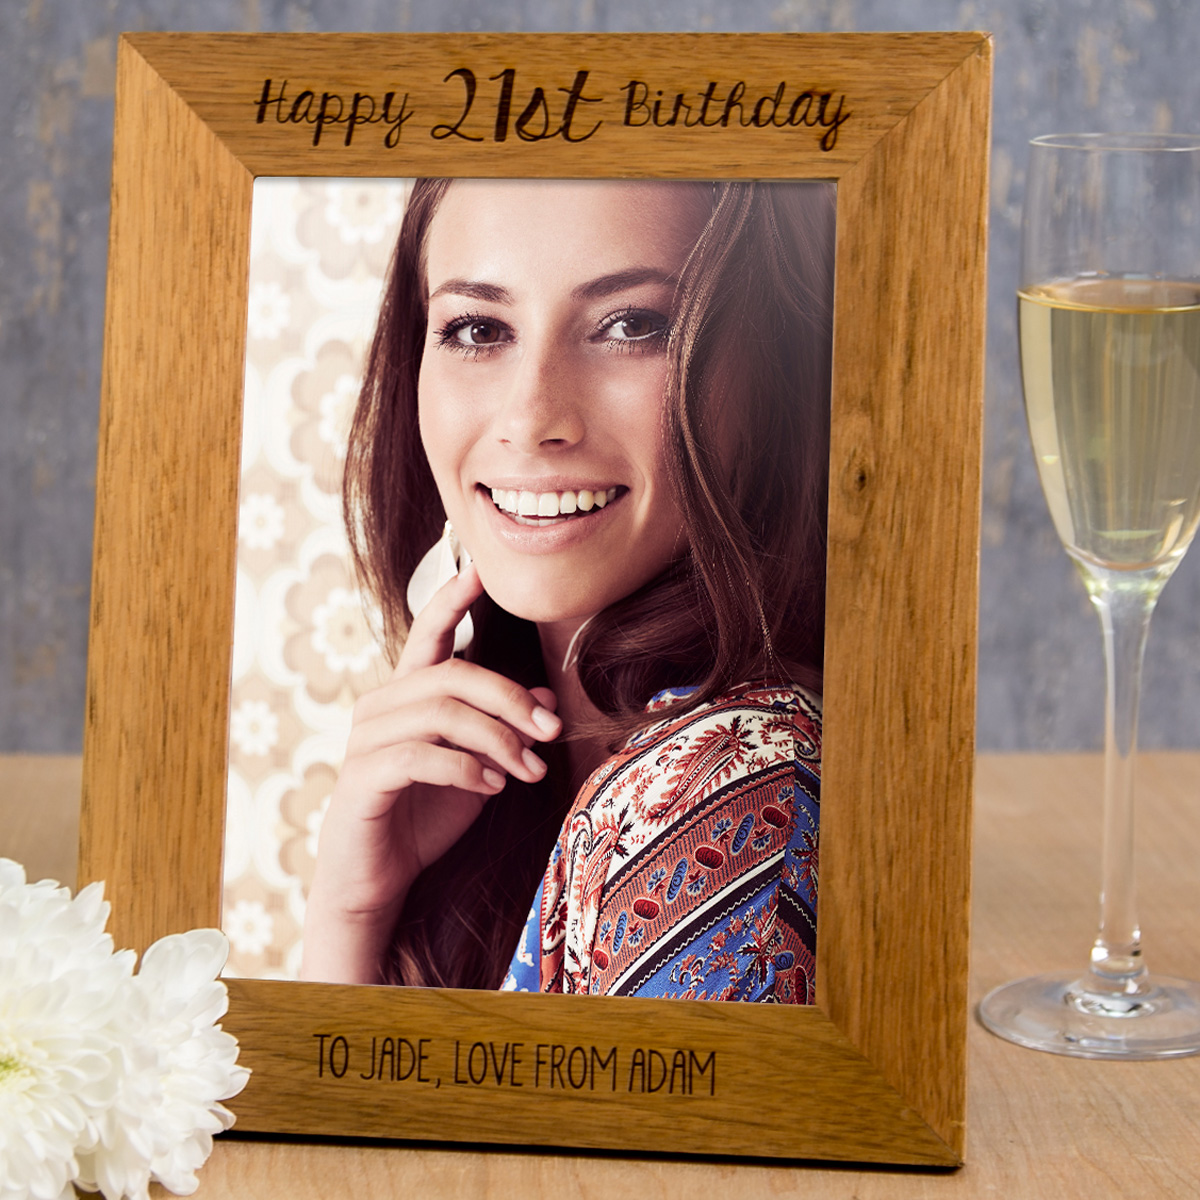 Personalised Wooden Photo Frame - Happy 21st Birthday - 21st gift